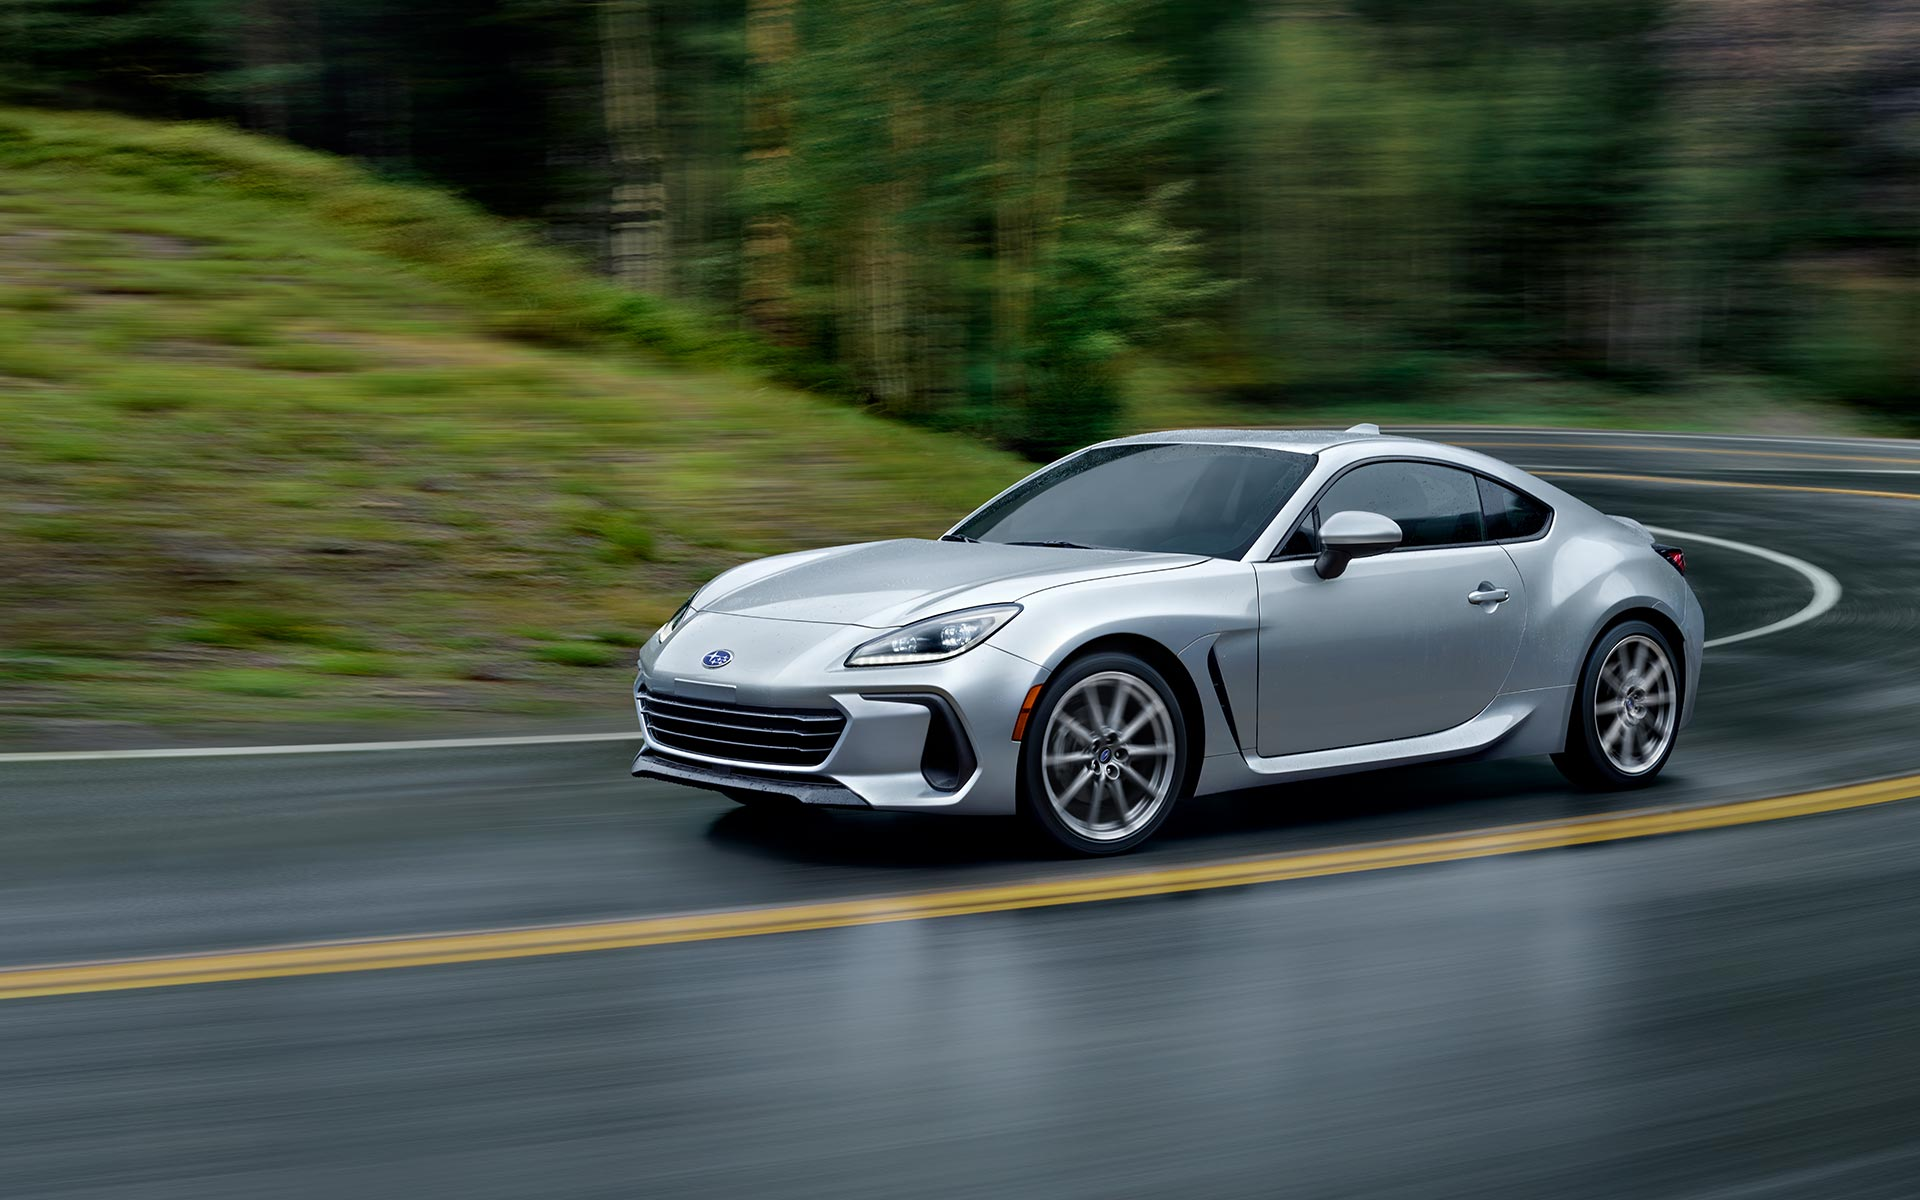 2022 Subaru BRZ driving on a wet road